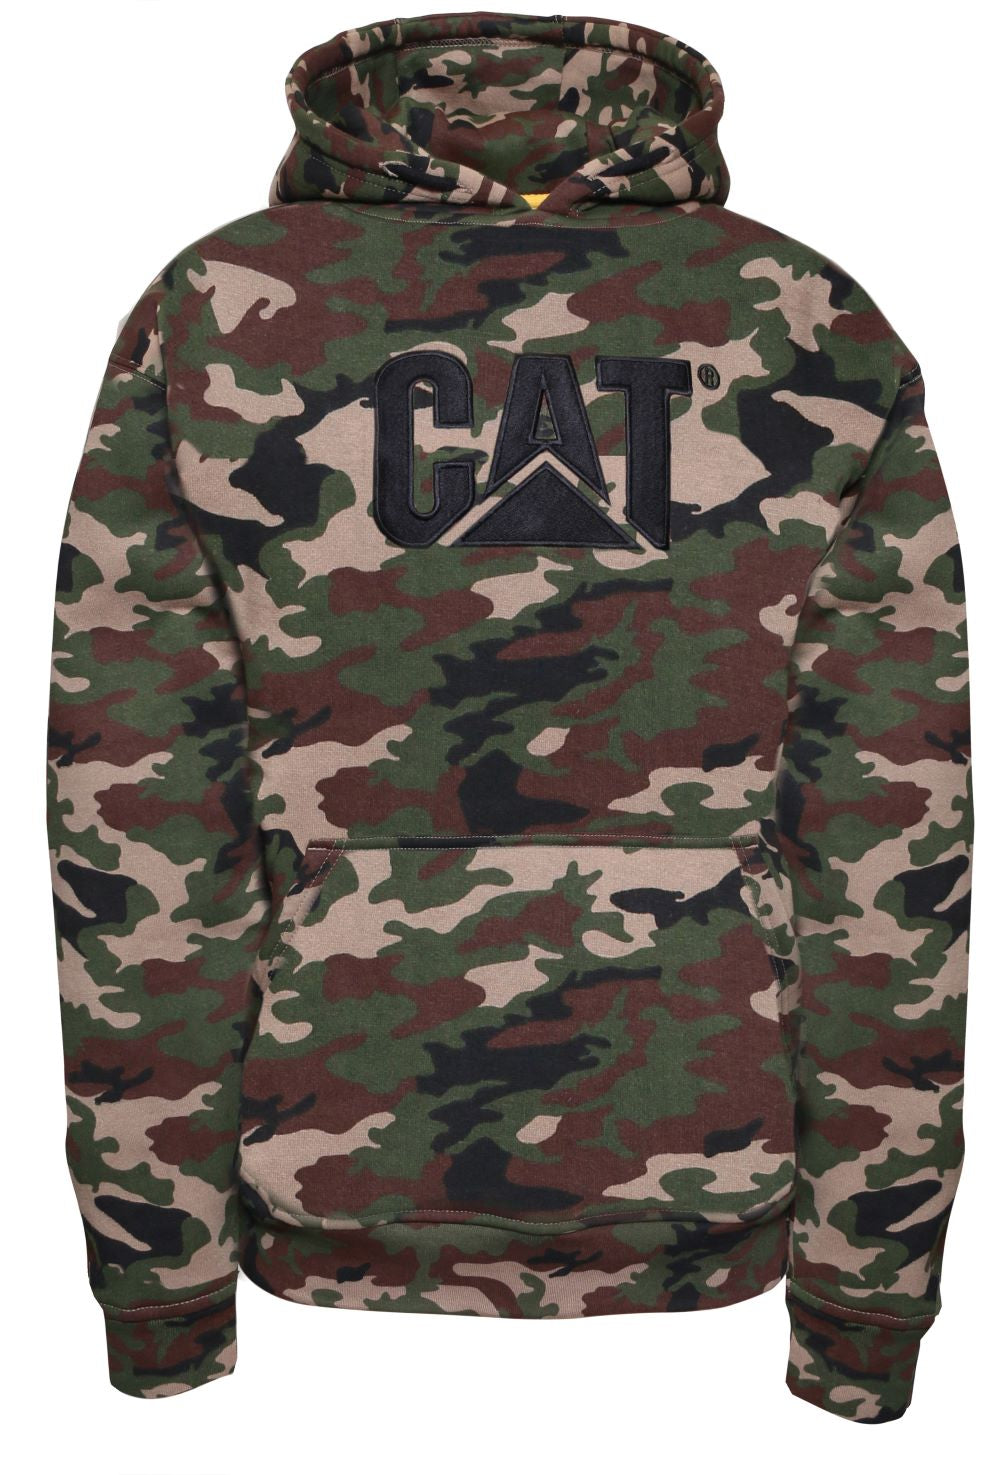 'Caterpillar' Men's Trademark Hooded Sweatshirt - Woodland Camo